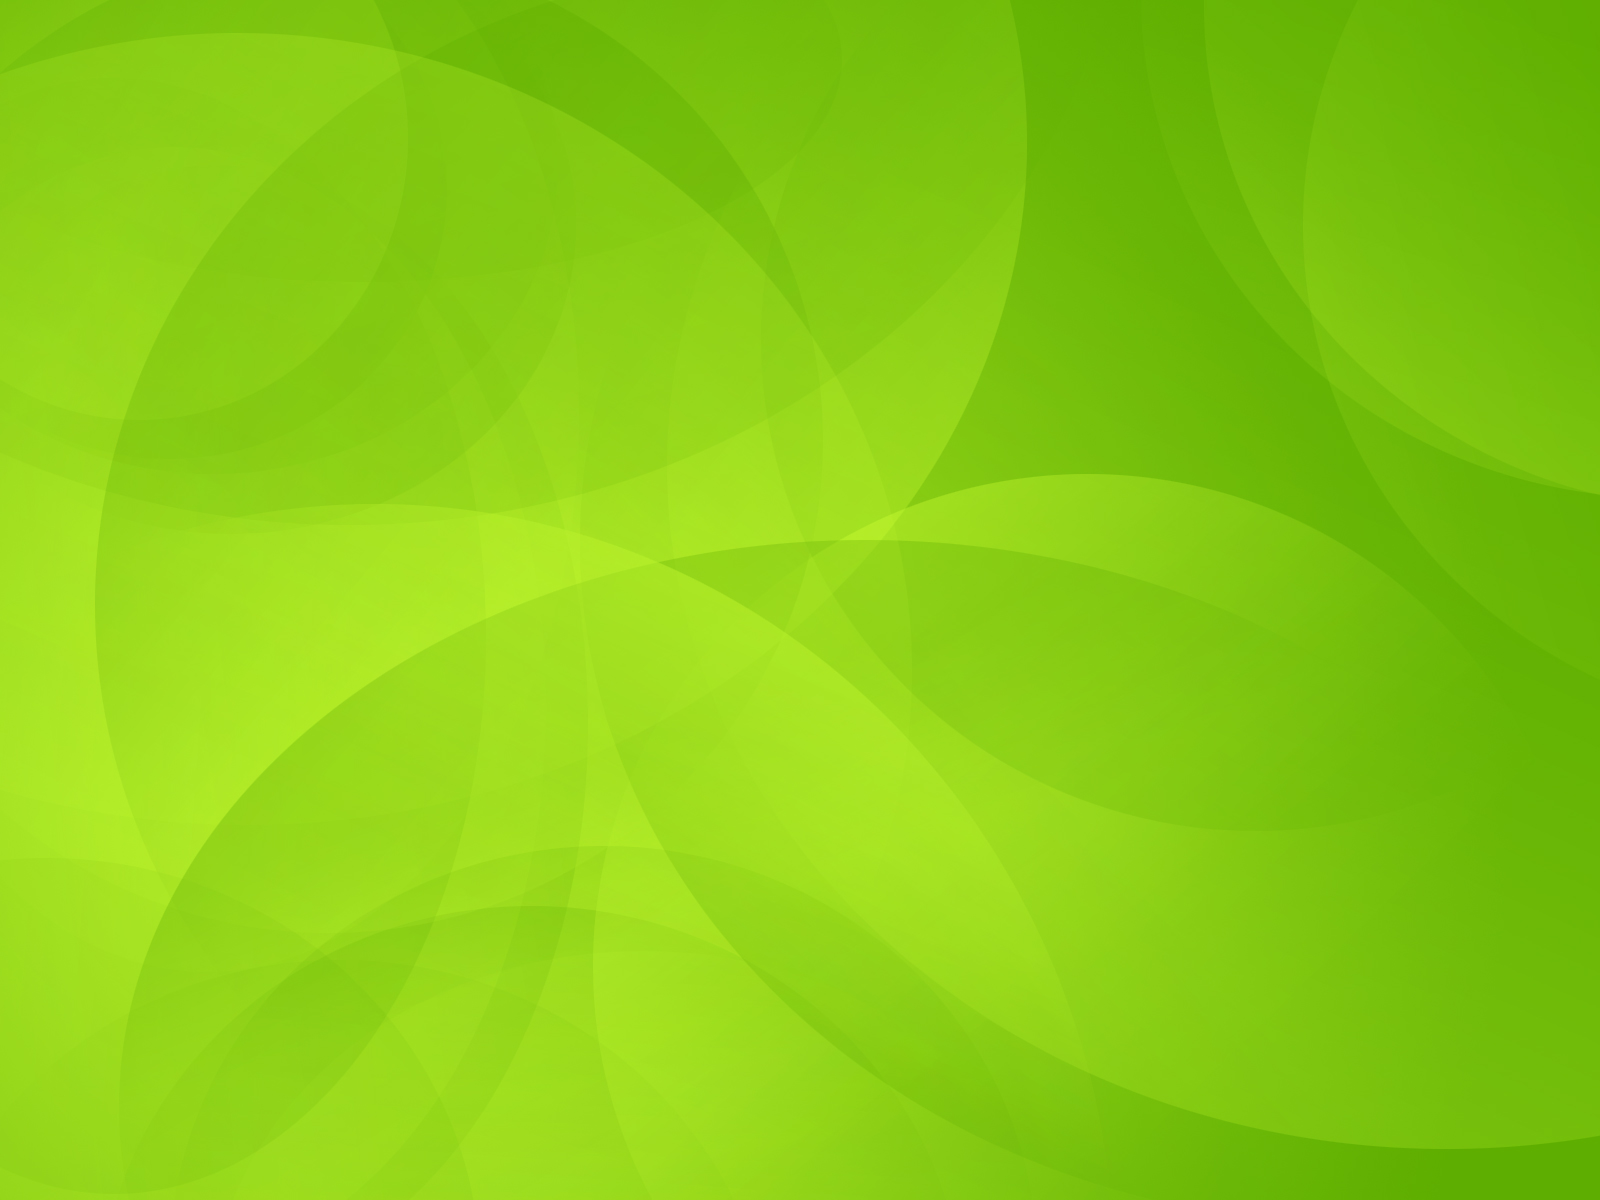 Ubuntu Swirls Green By Primoturbo On Deviantart